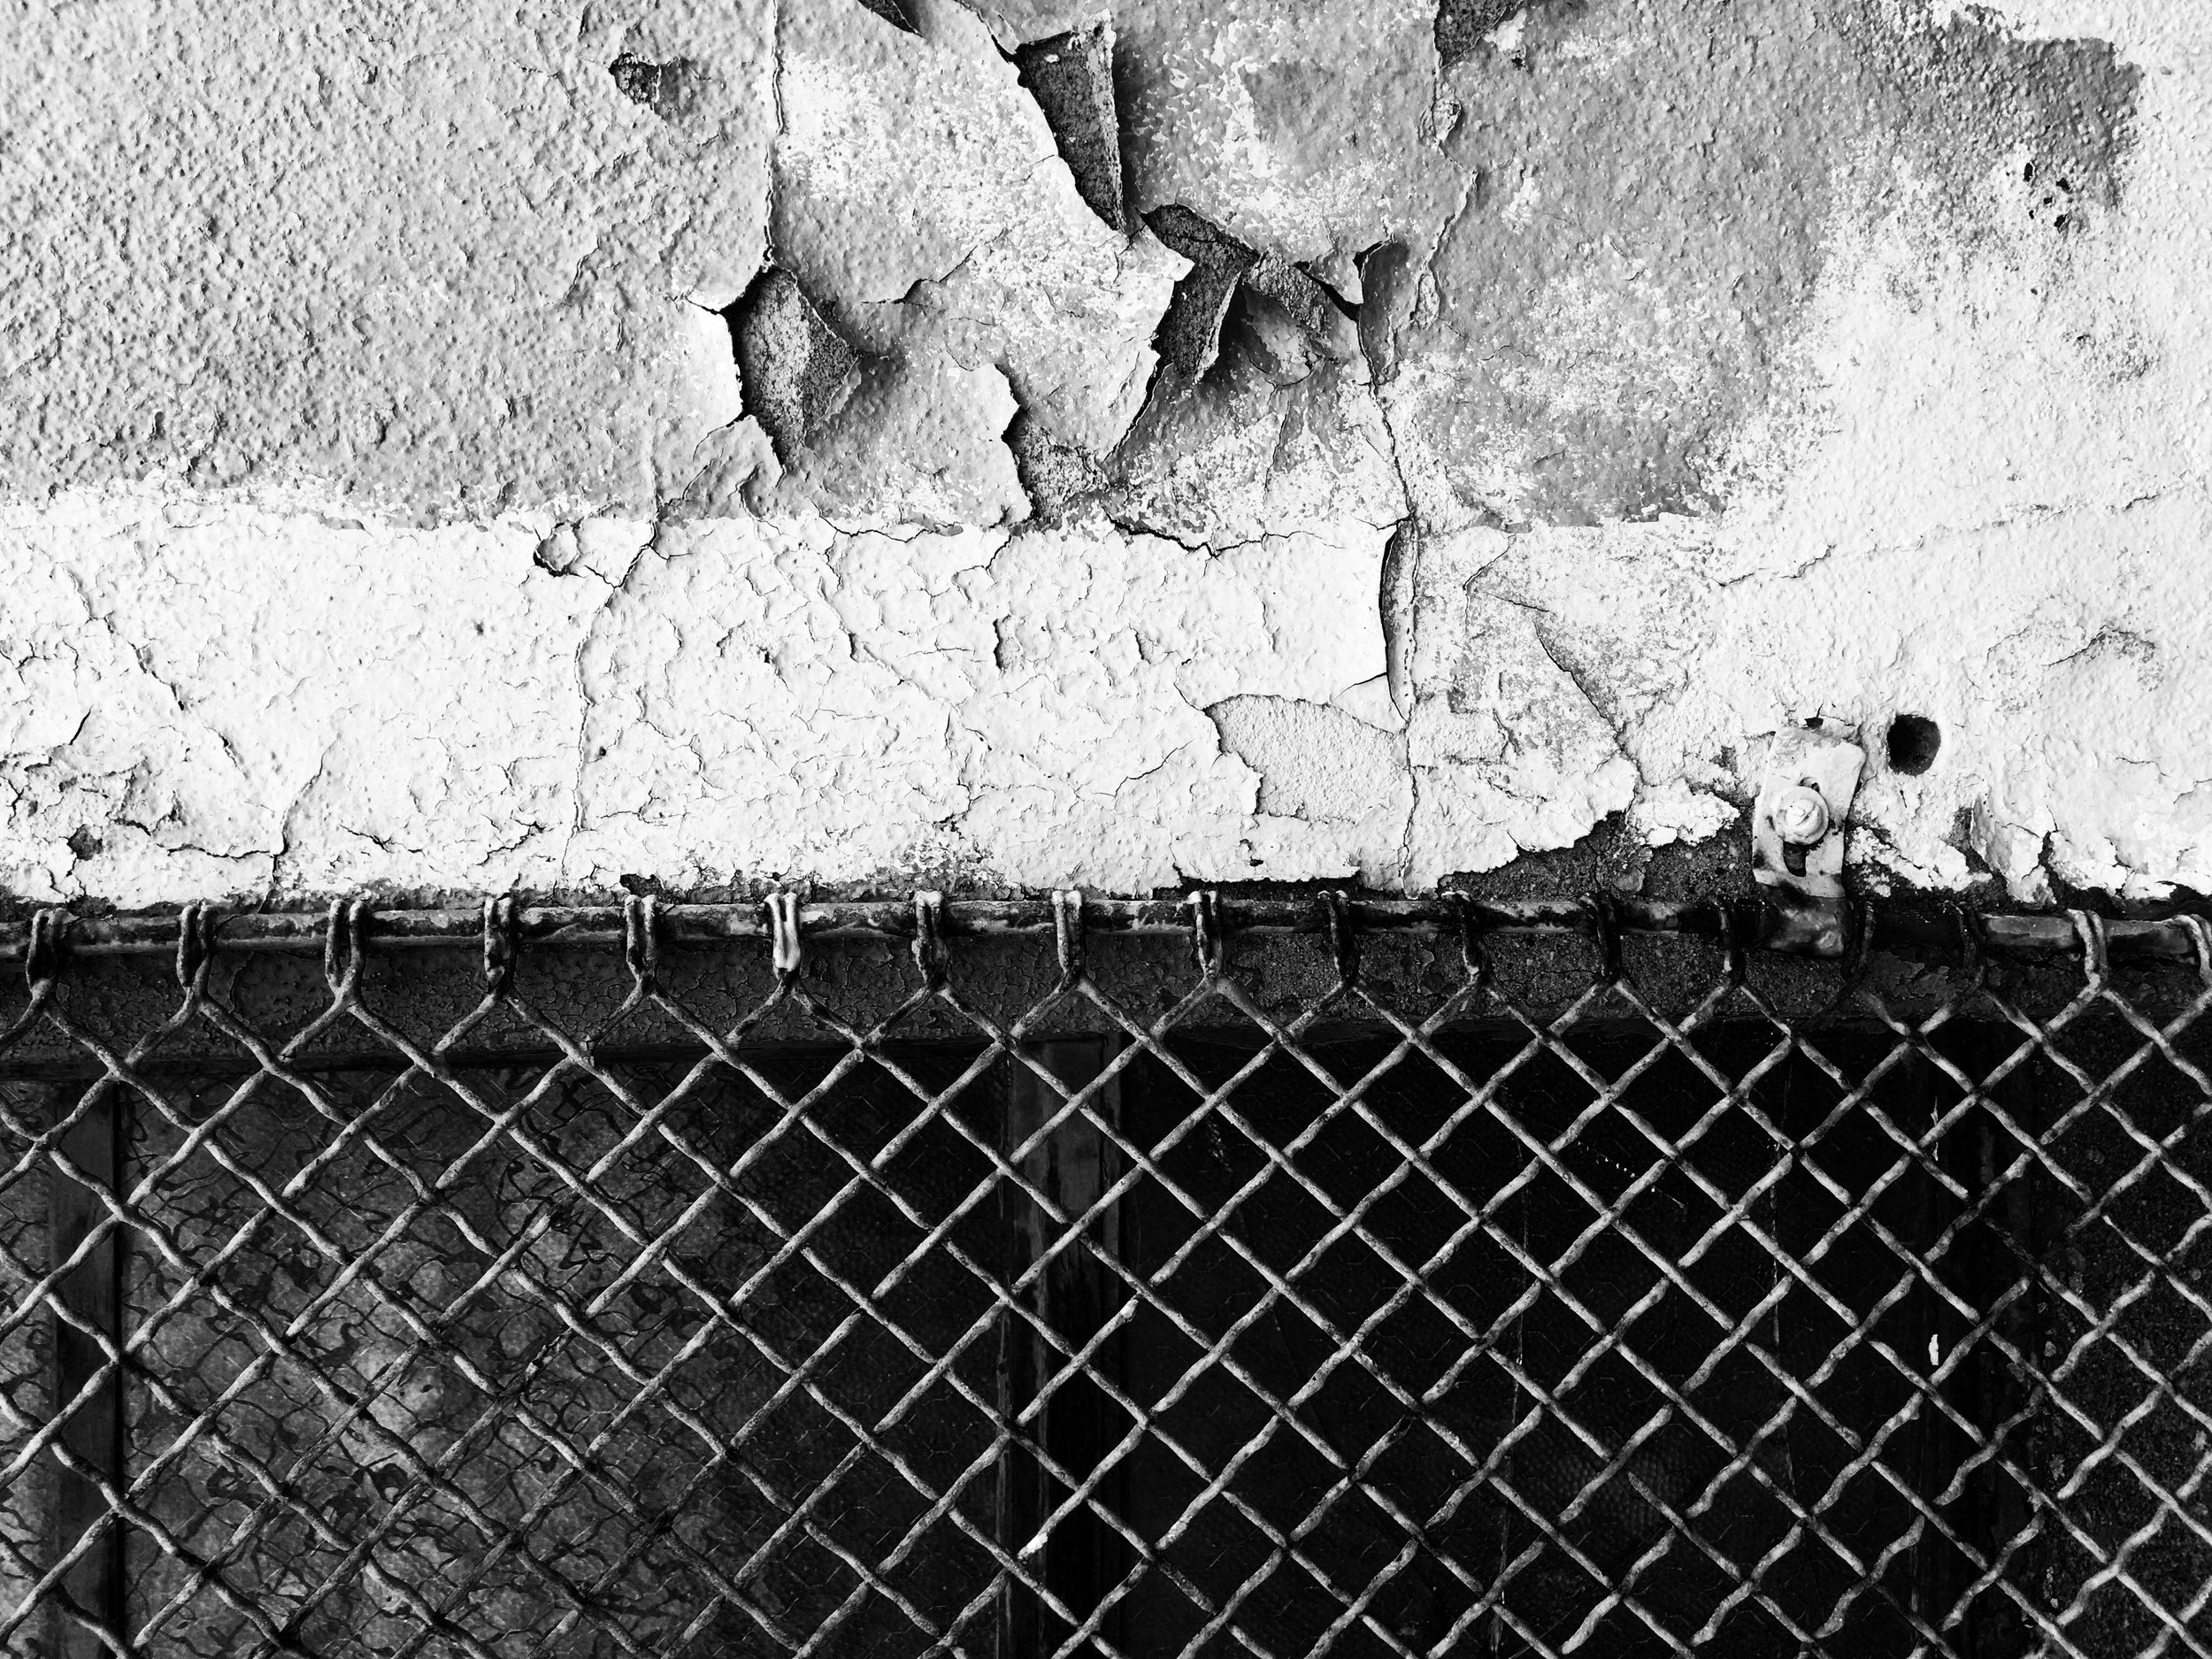 black_and_white_urban_texture_photography.jpg